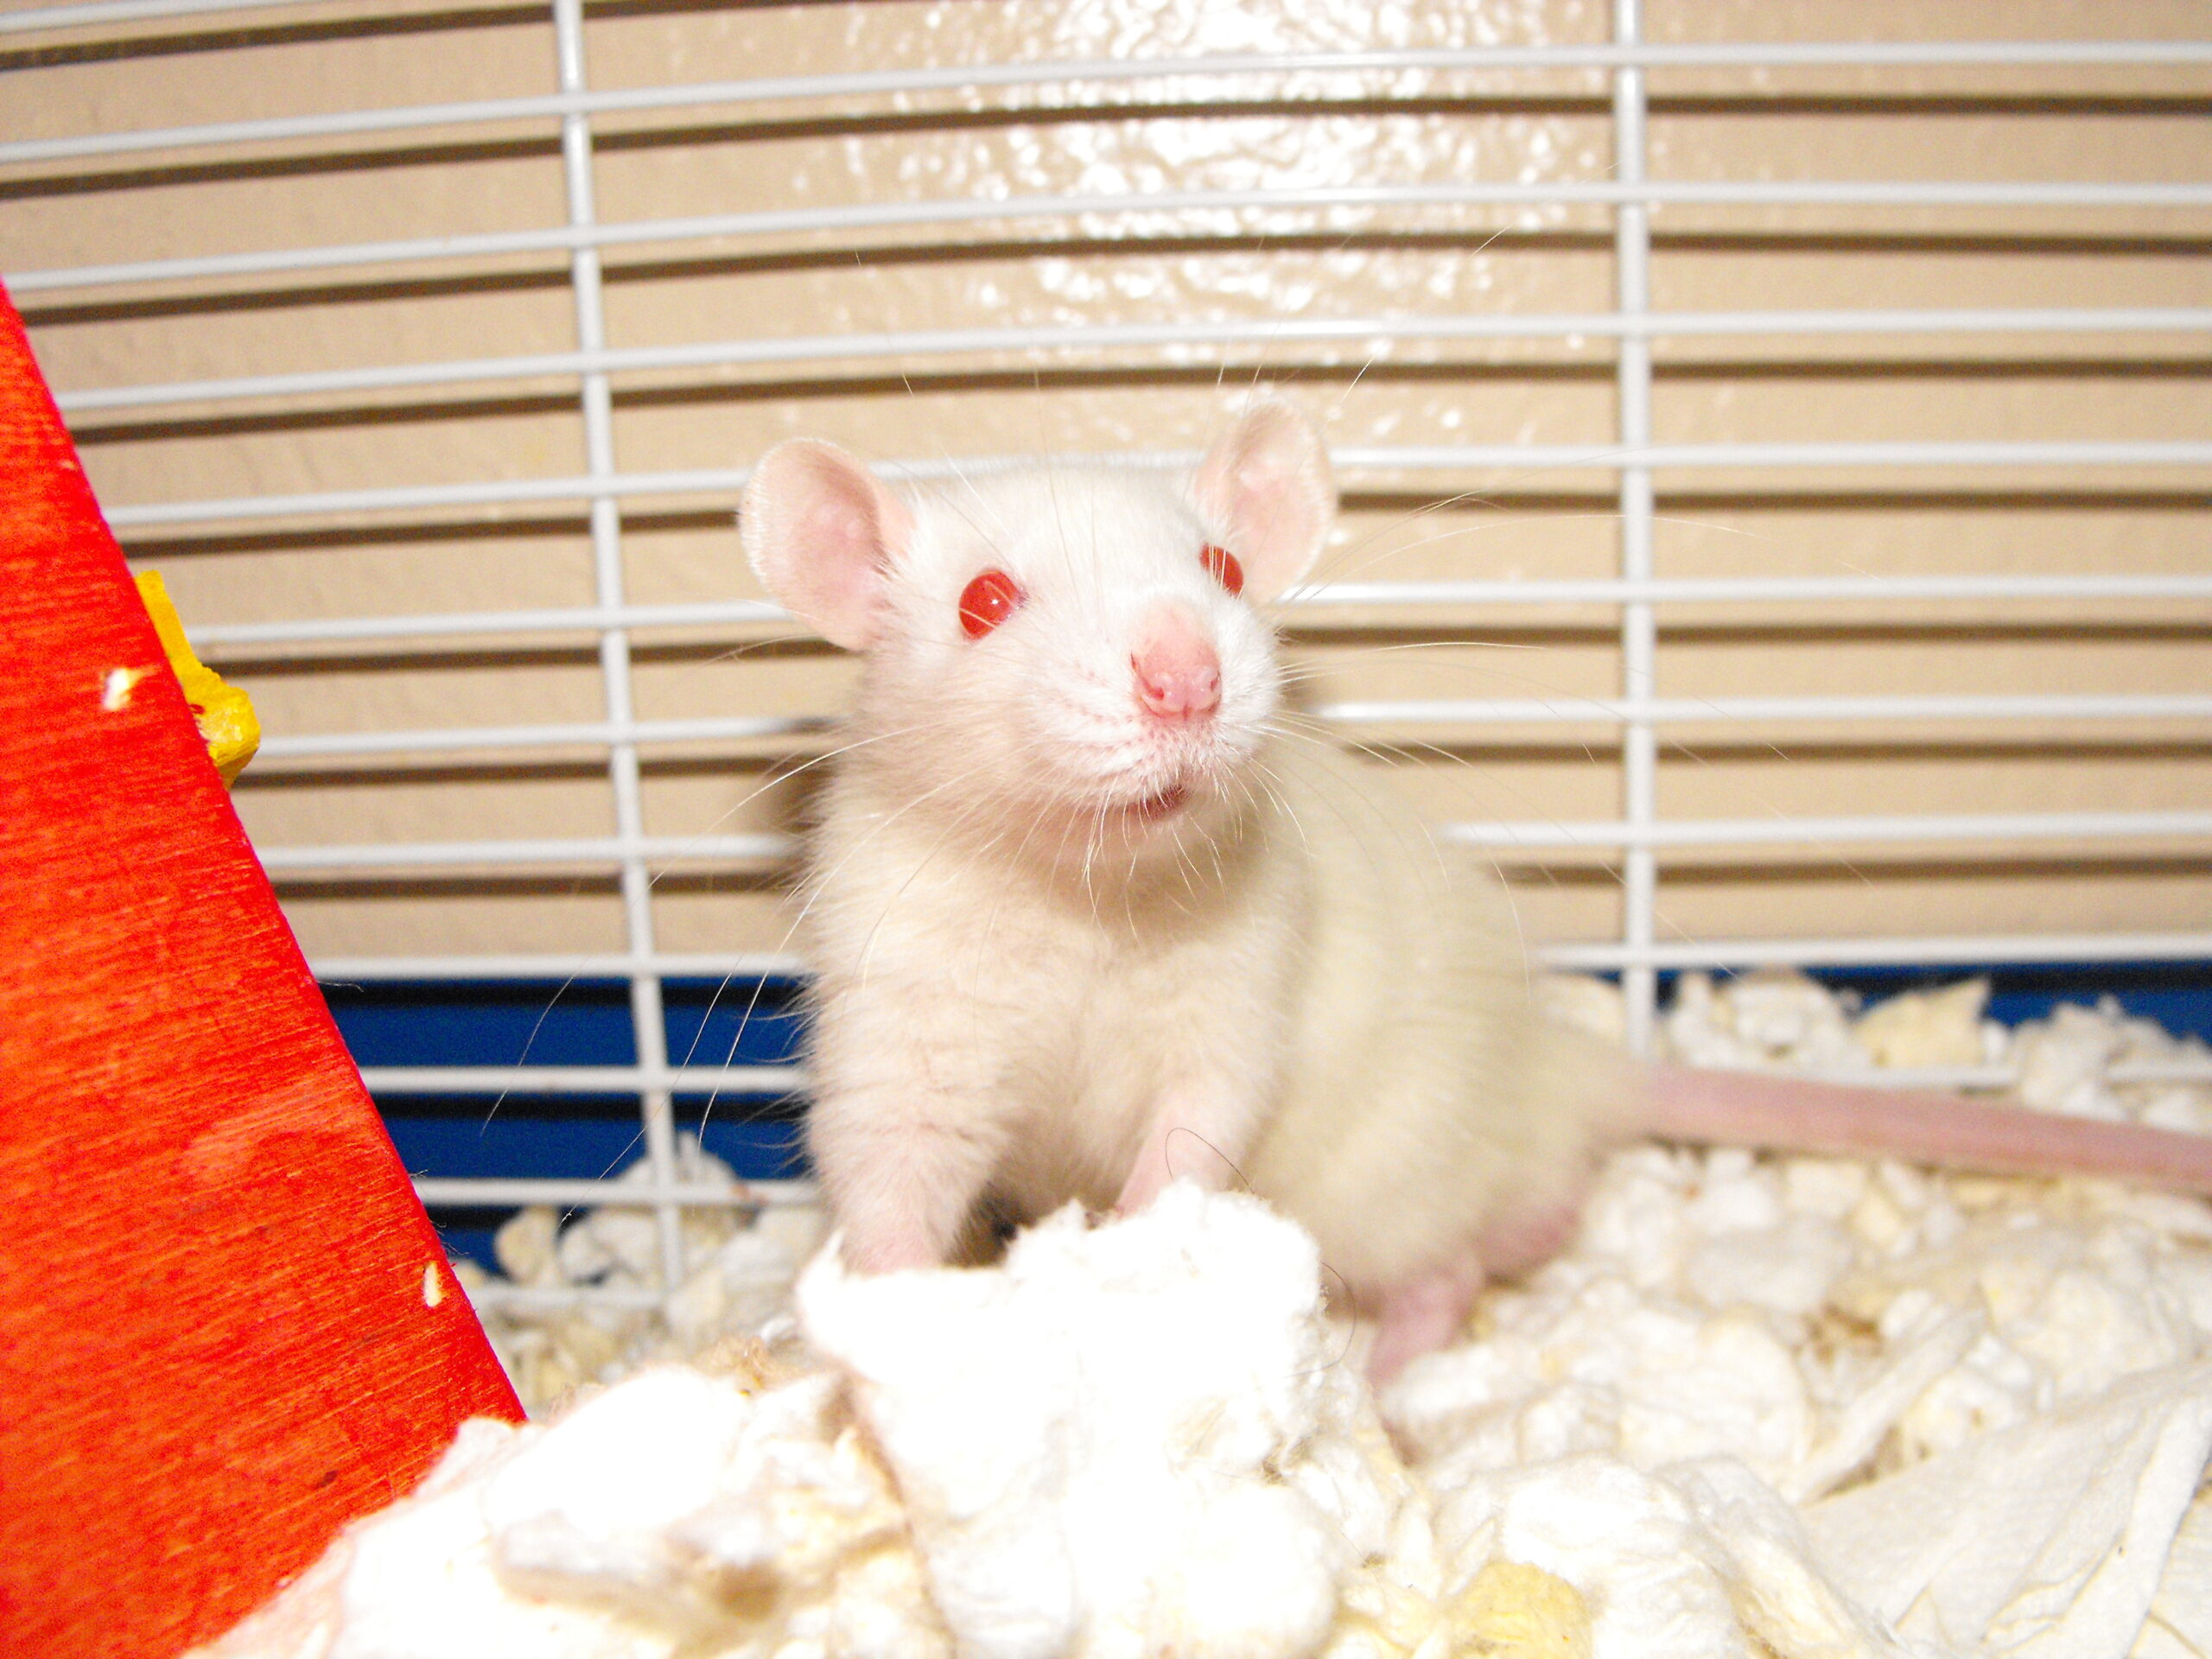 Mama Girl, a white rat with red eyes, sits in a clean and cozy cage post-rescue